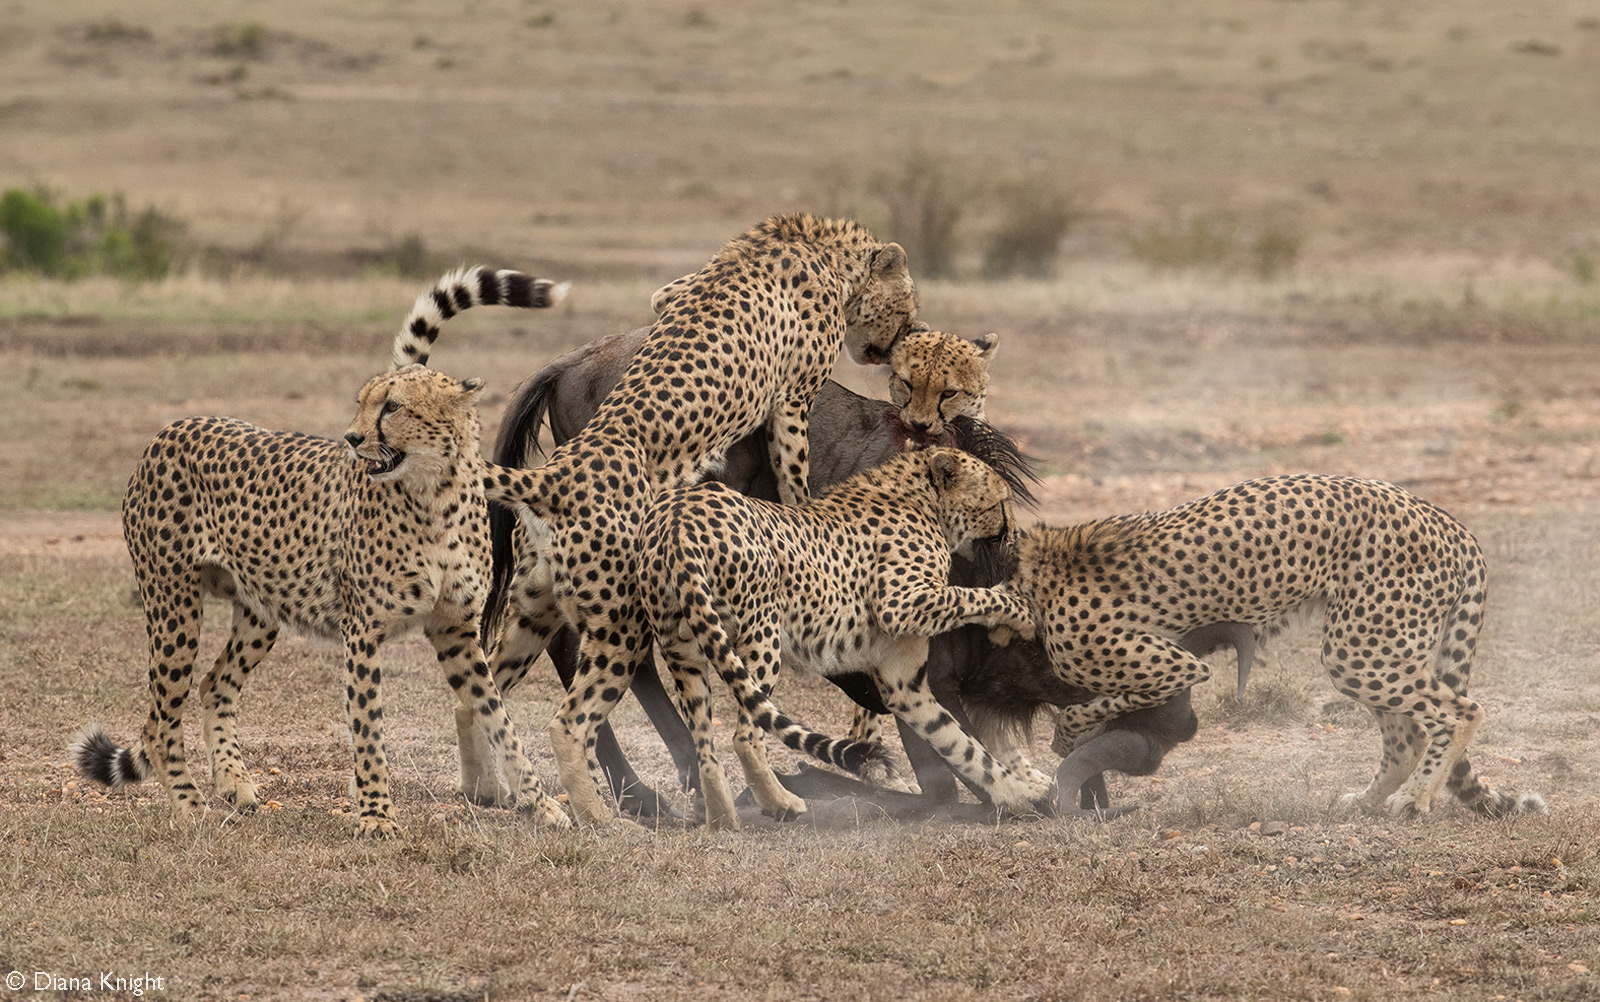 A coalition of five male cheetahs successfully take down a wildebeest. Maasai Mara National Reserve, Kenya © Diana Knight